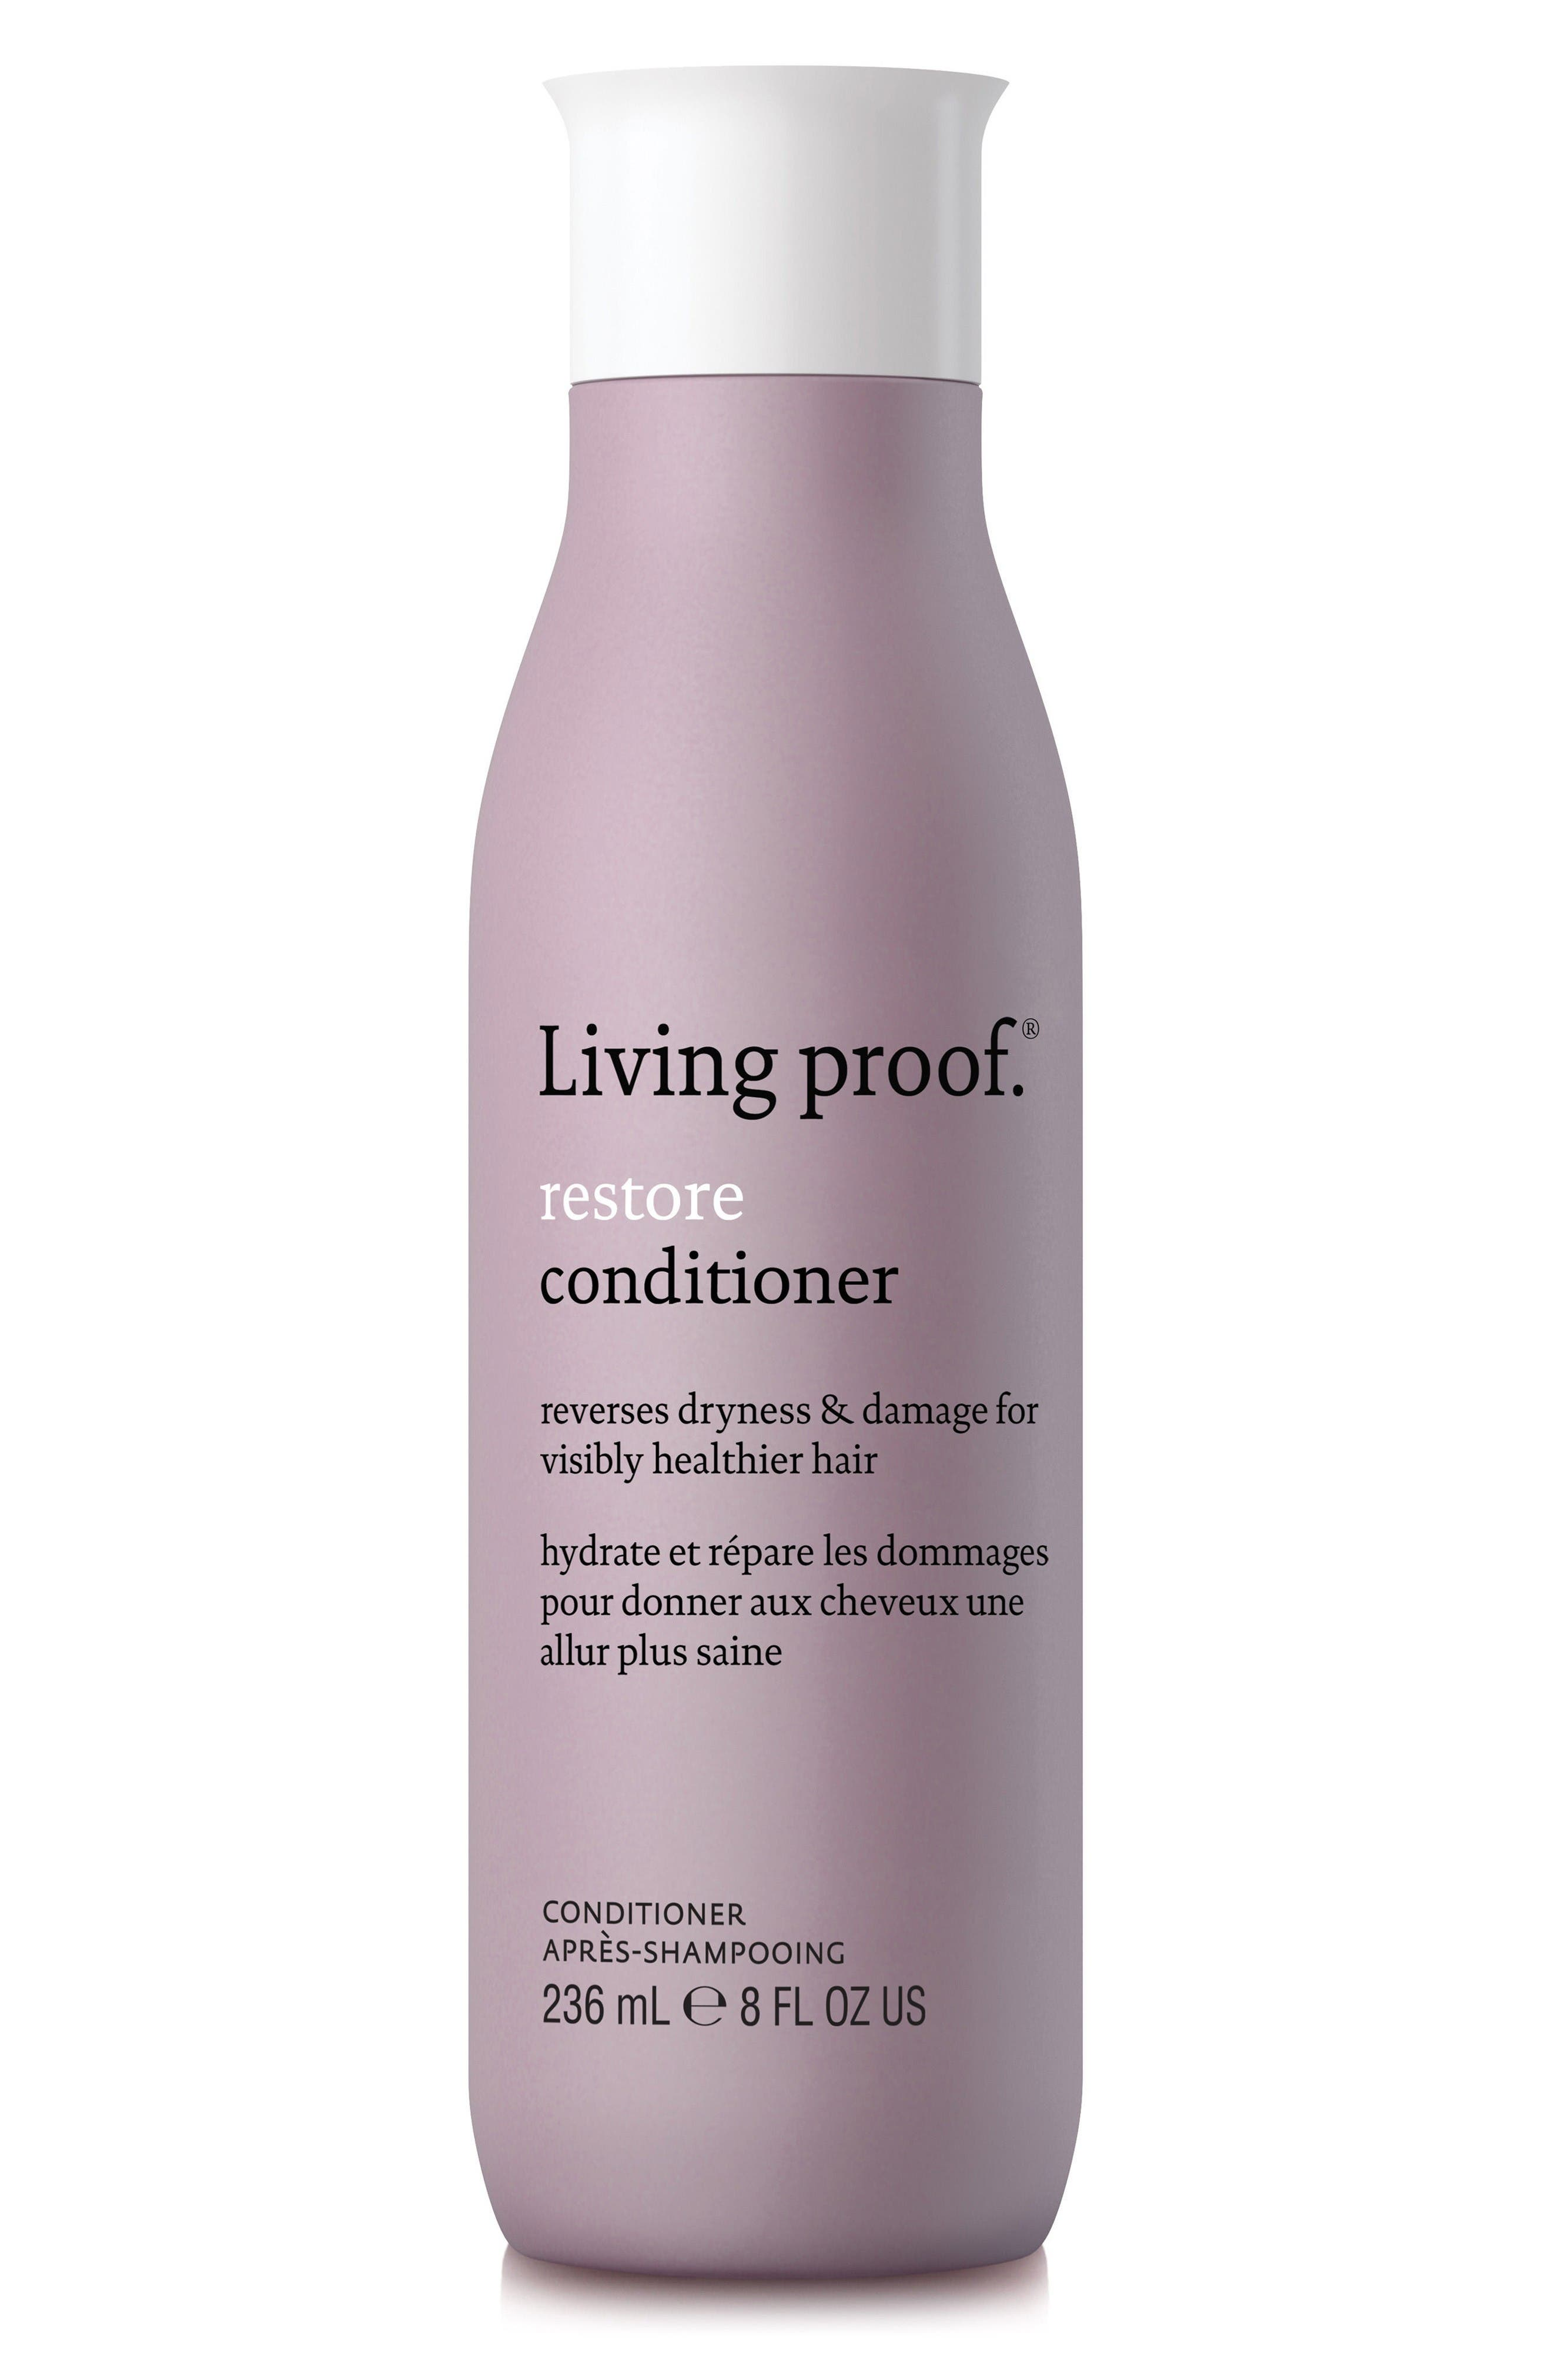 Living proof® Restore Conditioner